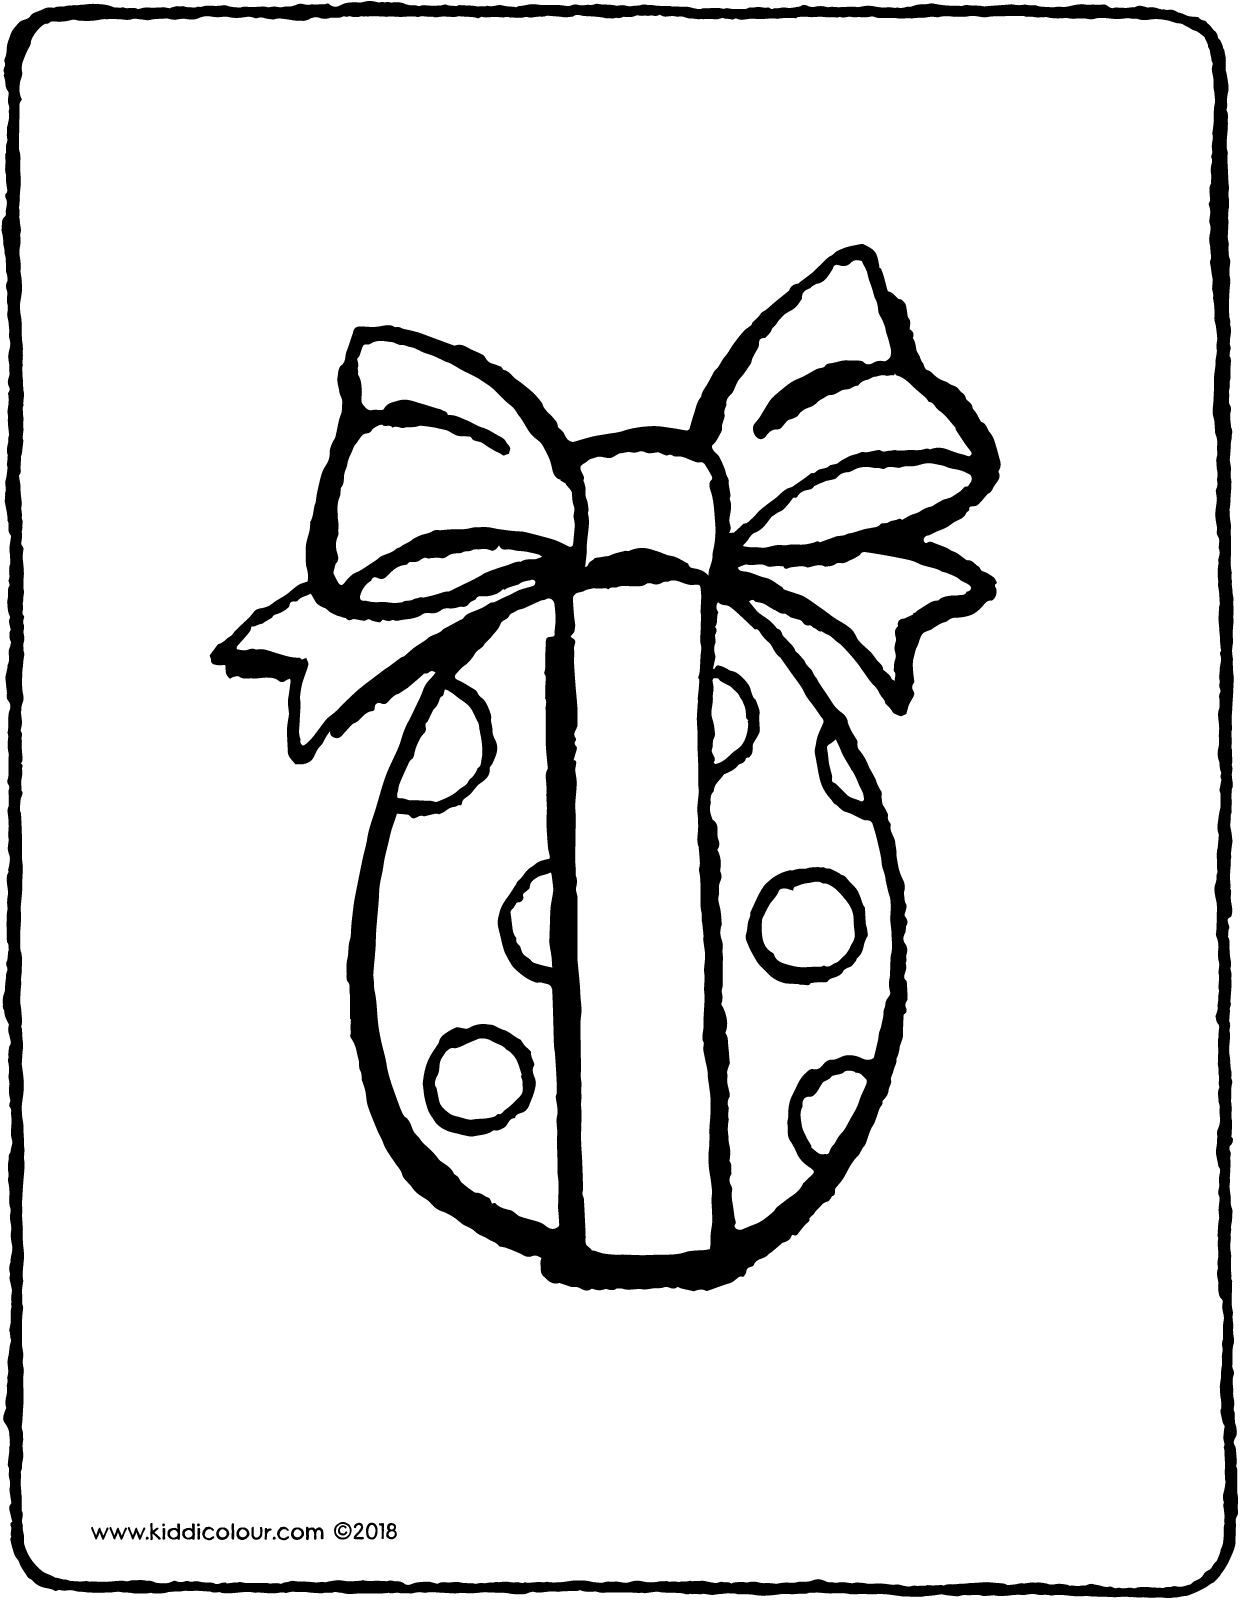 1240x1600 Easter Egg With Ribbon